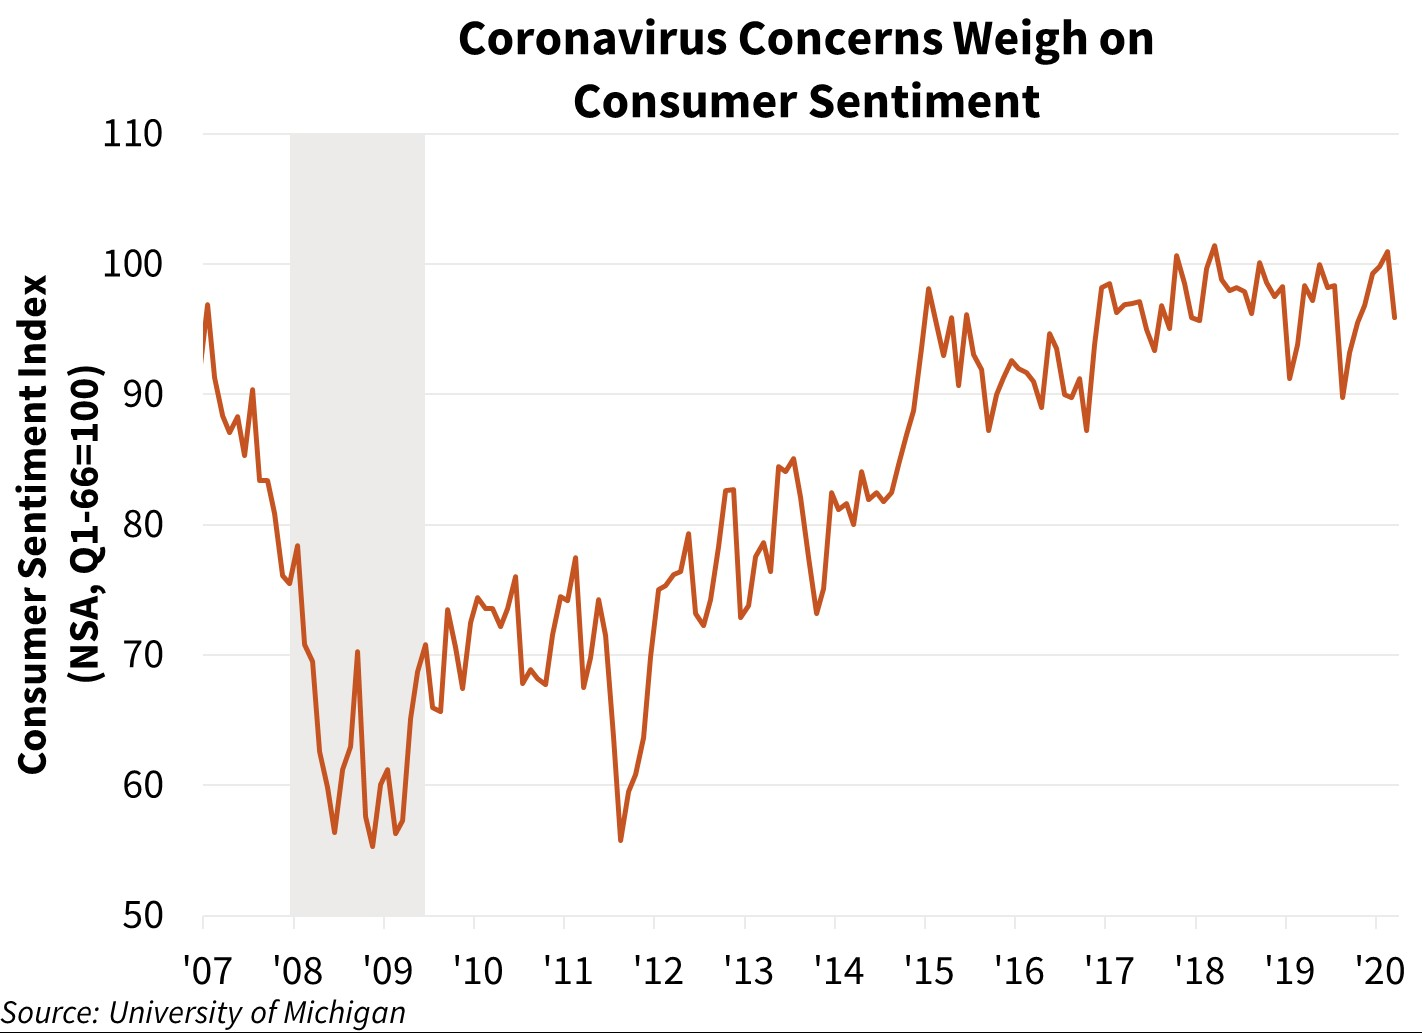 Coronavirus Concerns Weigh on Consumer Sentiment